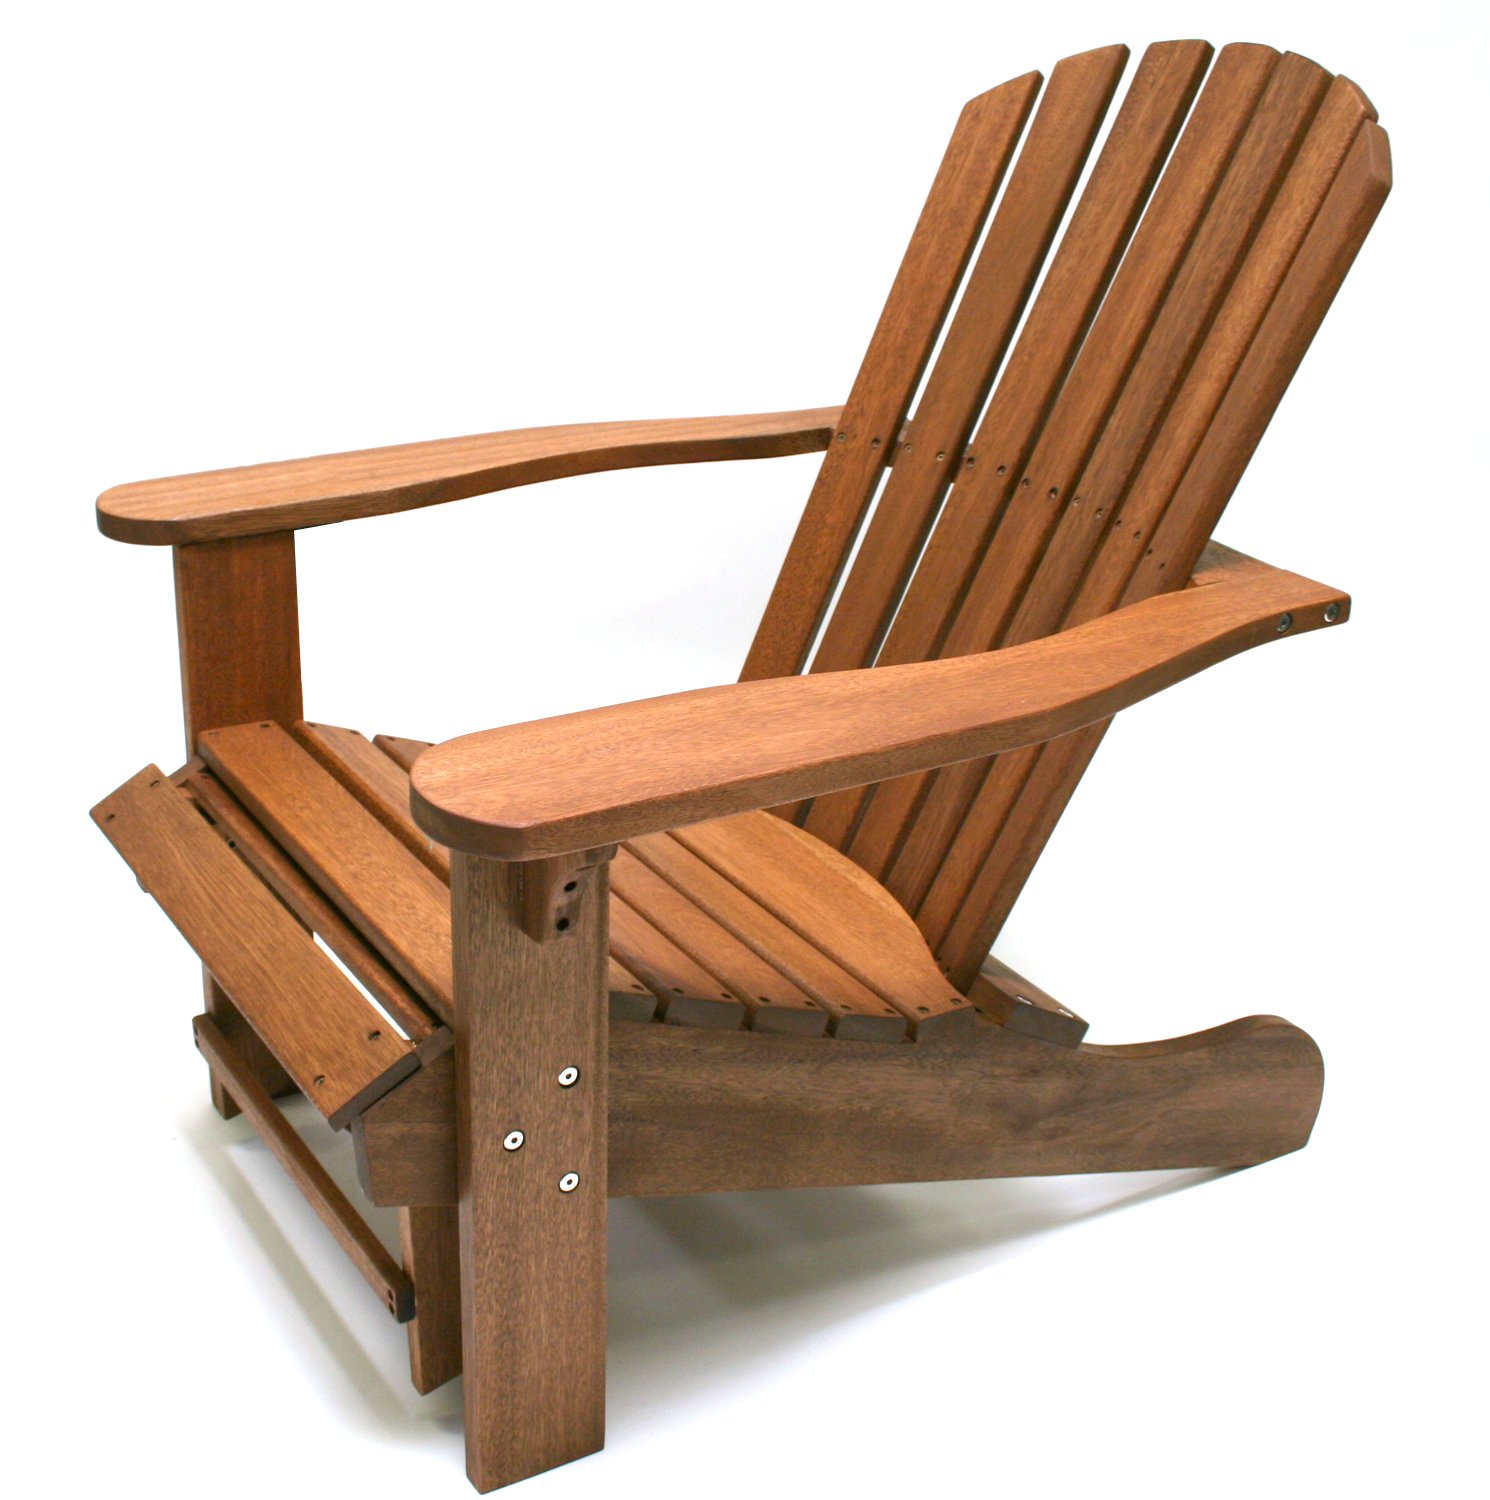 unfinished chairs deals free living adirondack kotulas fir chair outdoor tall com furniture wood